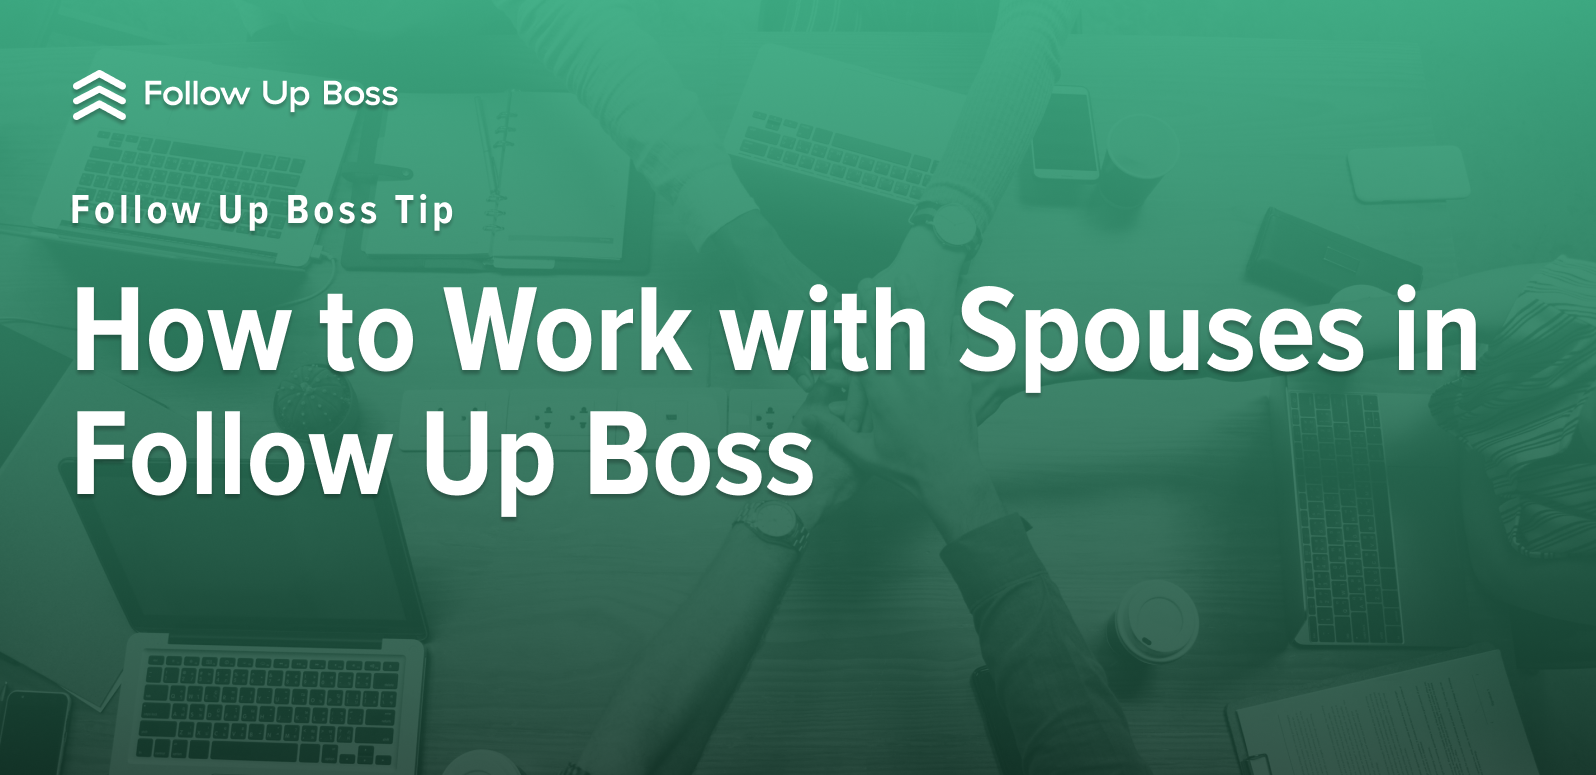 Tip: How to Work with Spouses in Follow Up Boss